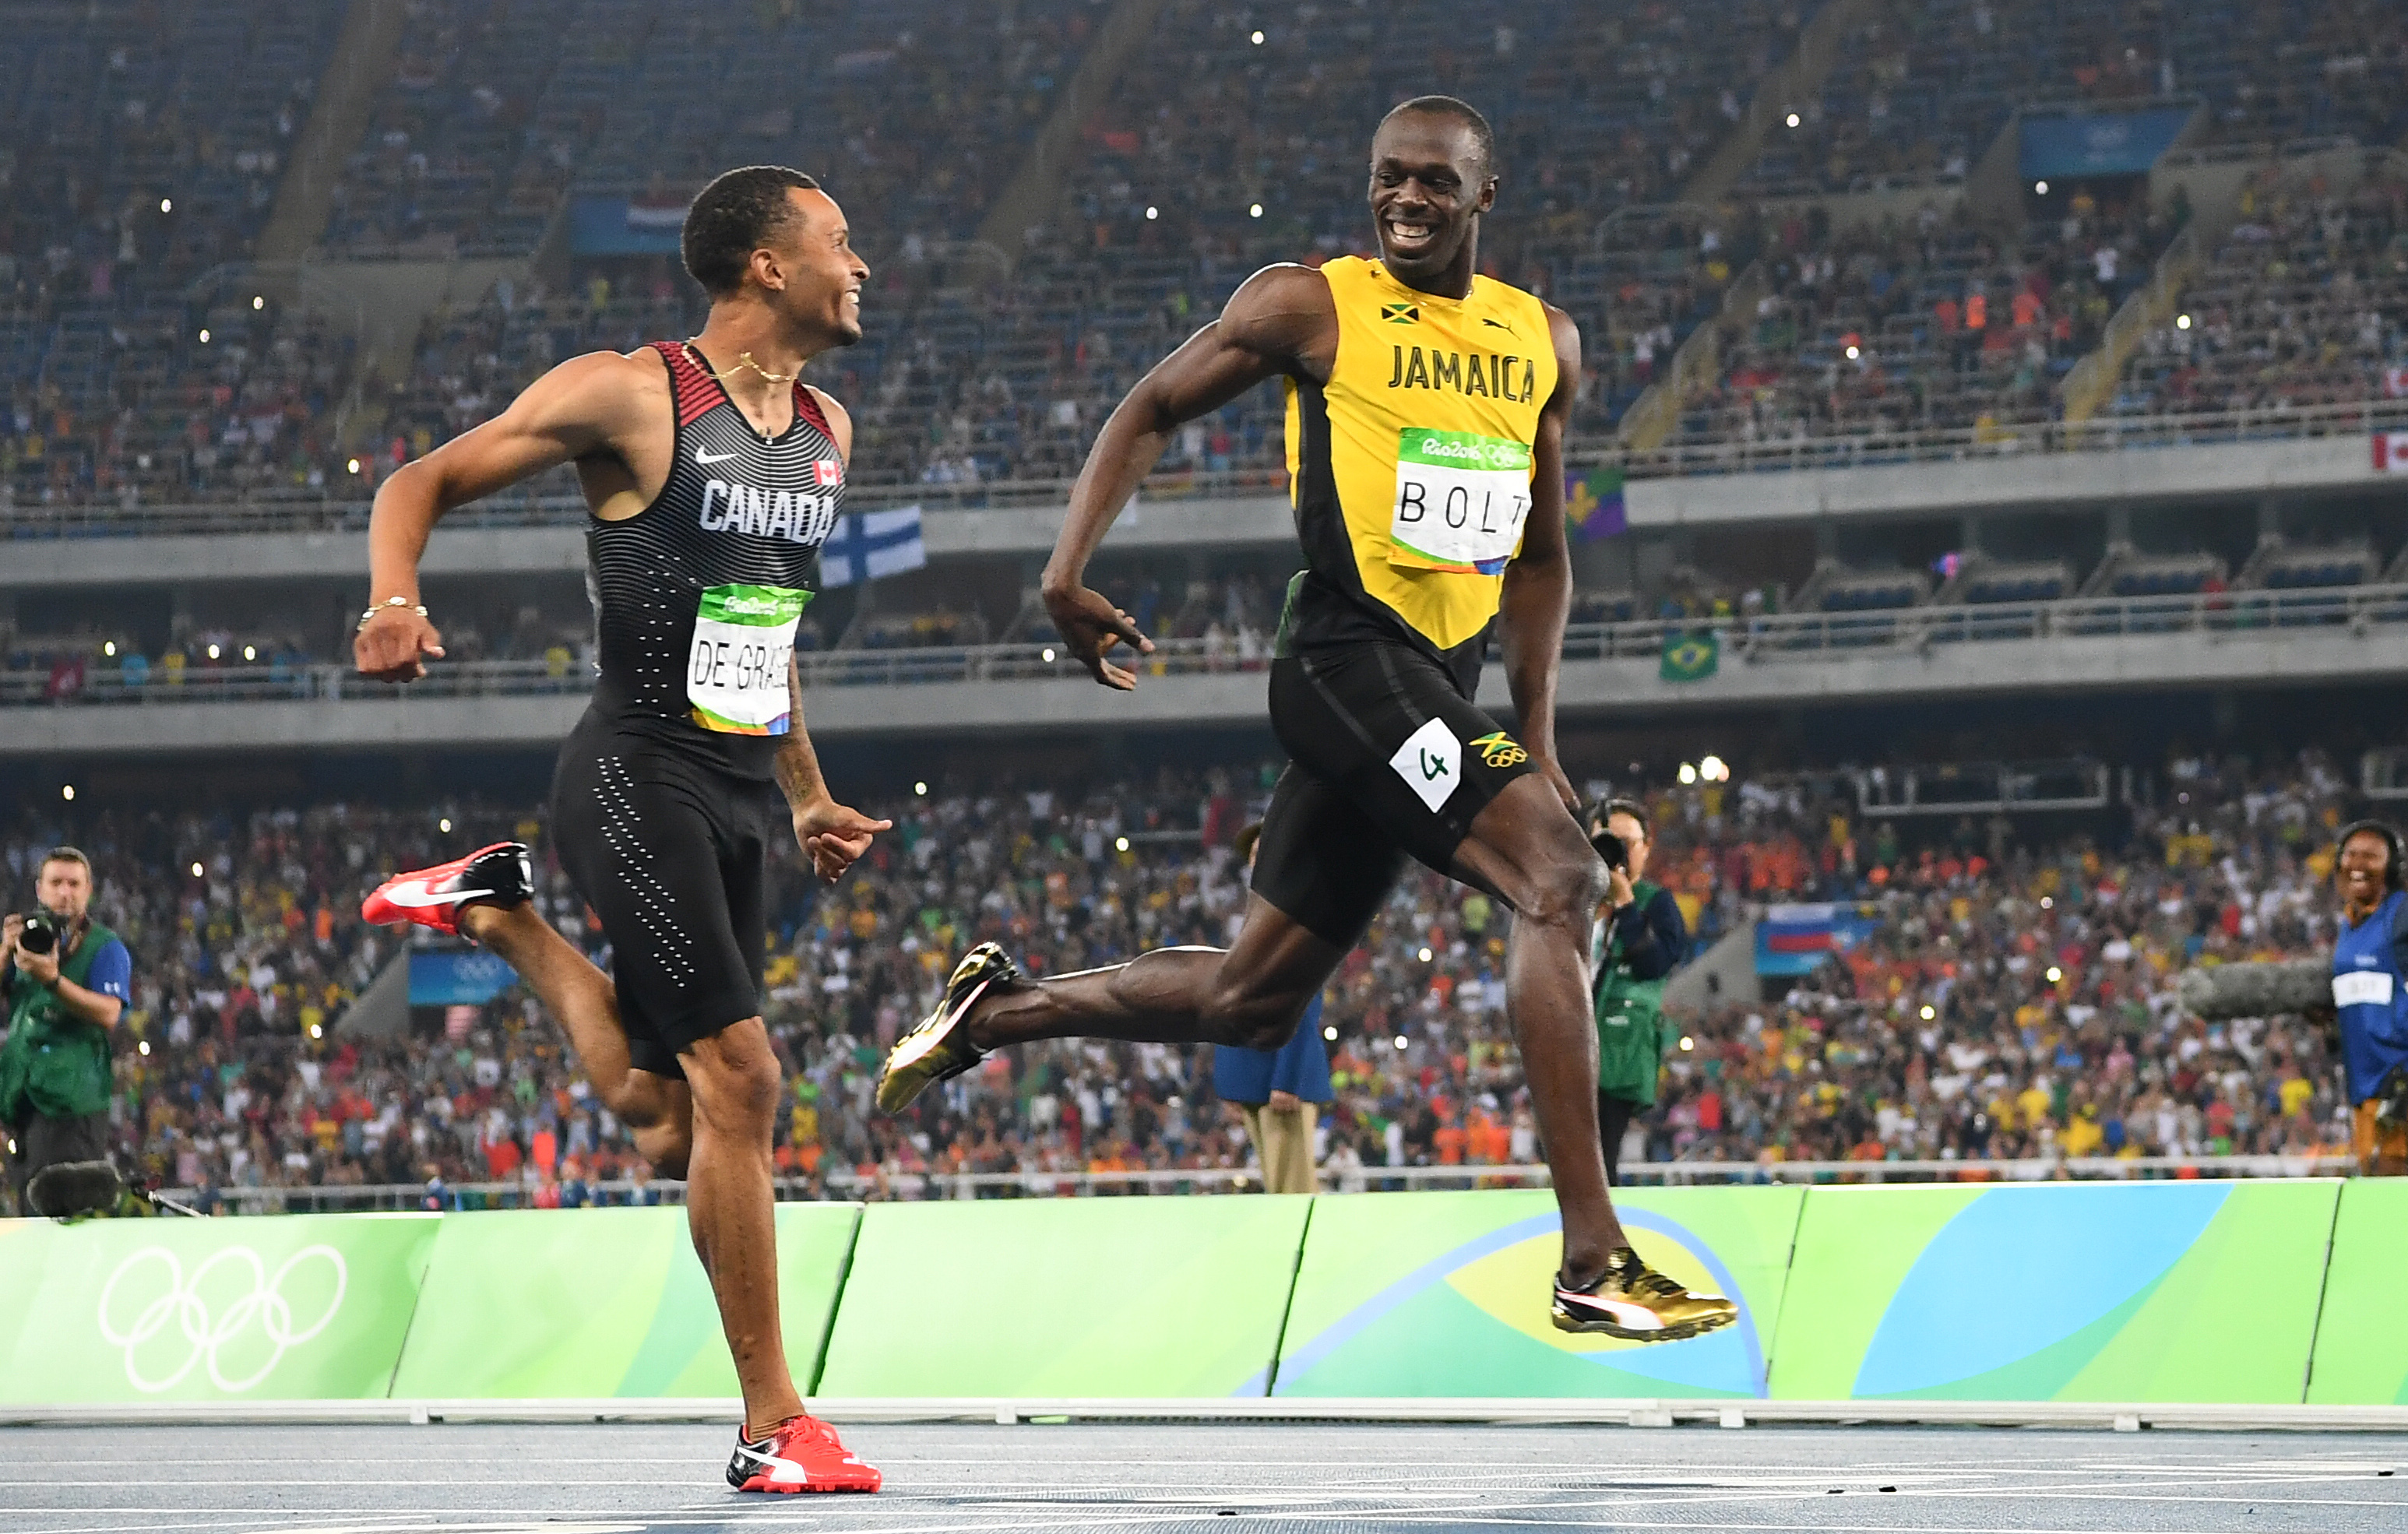 Canada's Andre De Grasse and Jamaica's Usain Bolt compete in the Men's 200m Semifinal at the Rio 2016 Olympic Games on Aug. 17, 2016.